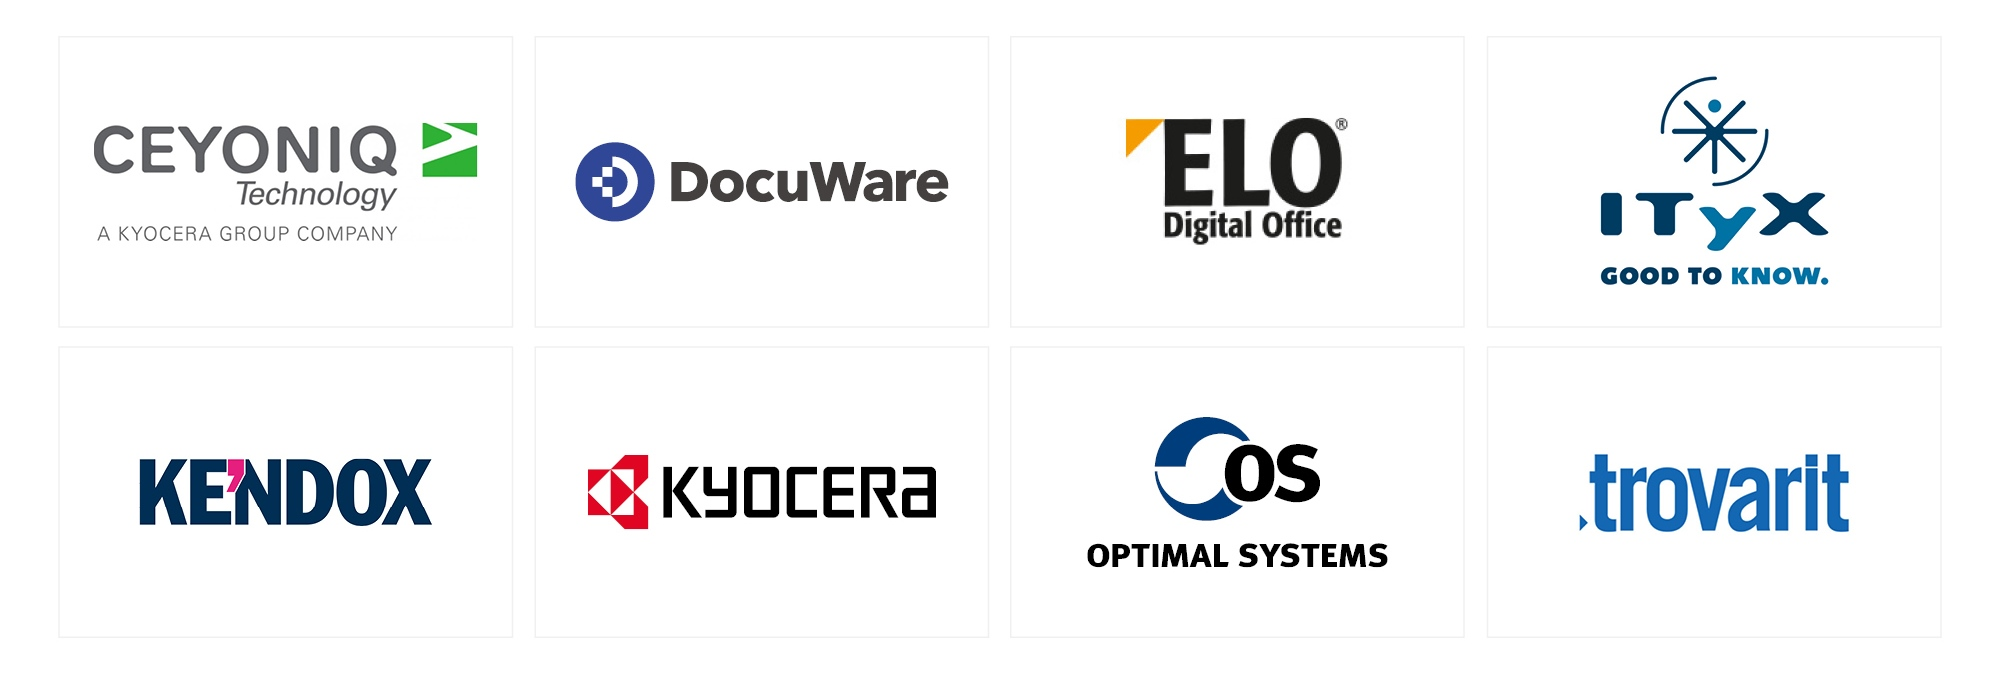 Partner Digital Office im Mittelstand 2019